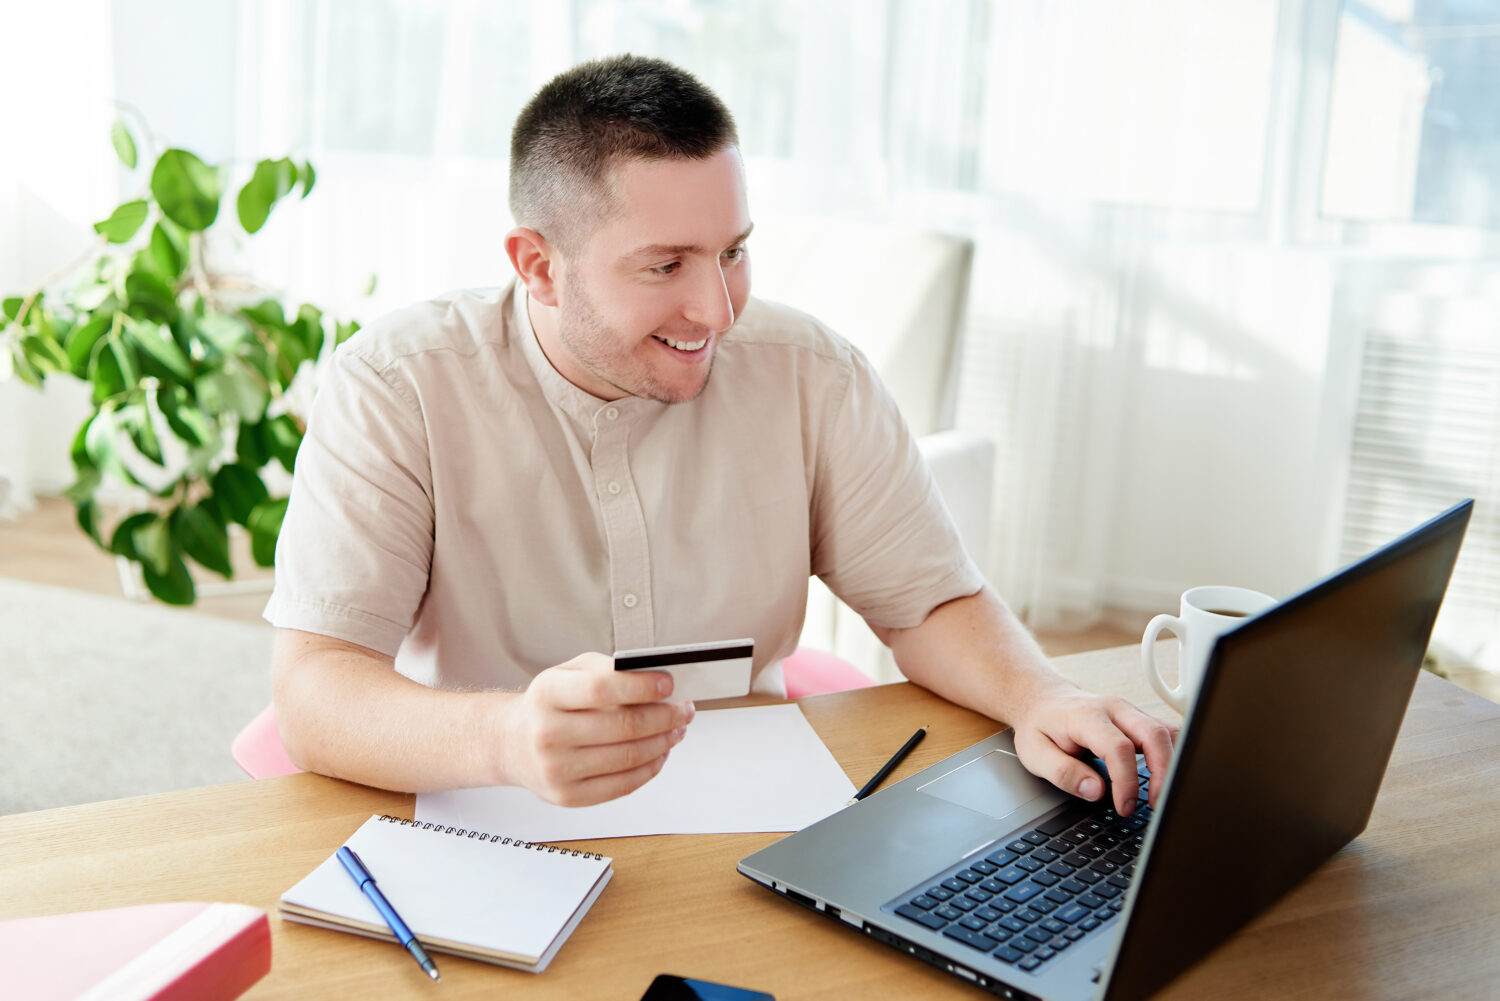 man looking at his laptop holding a credit card